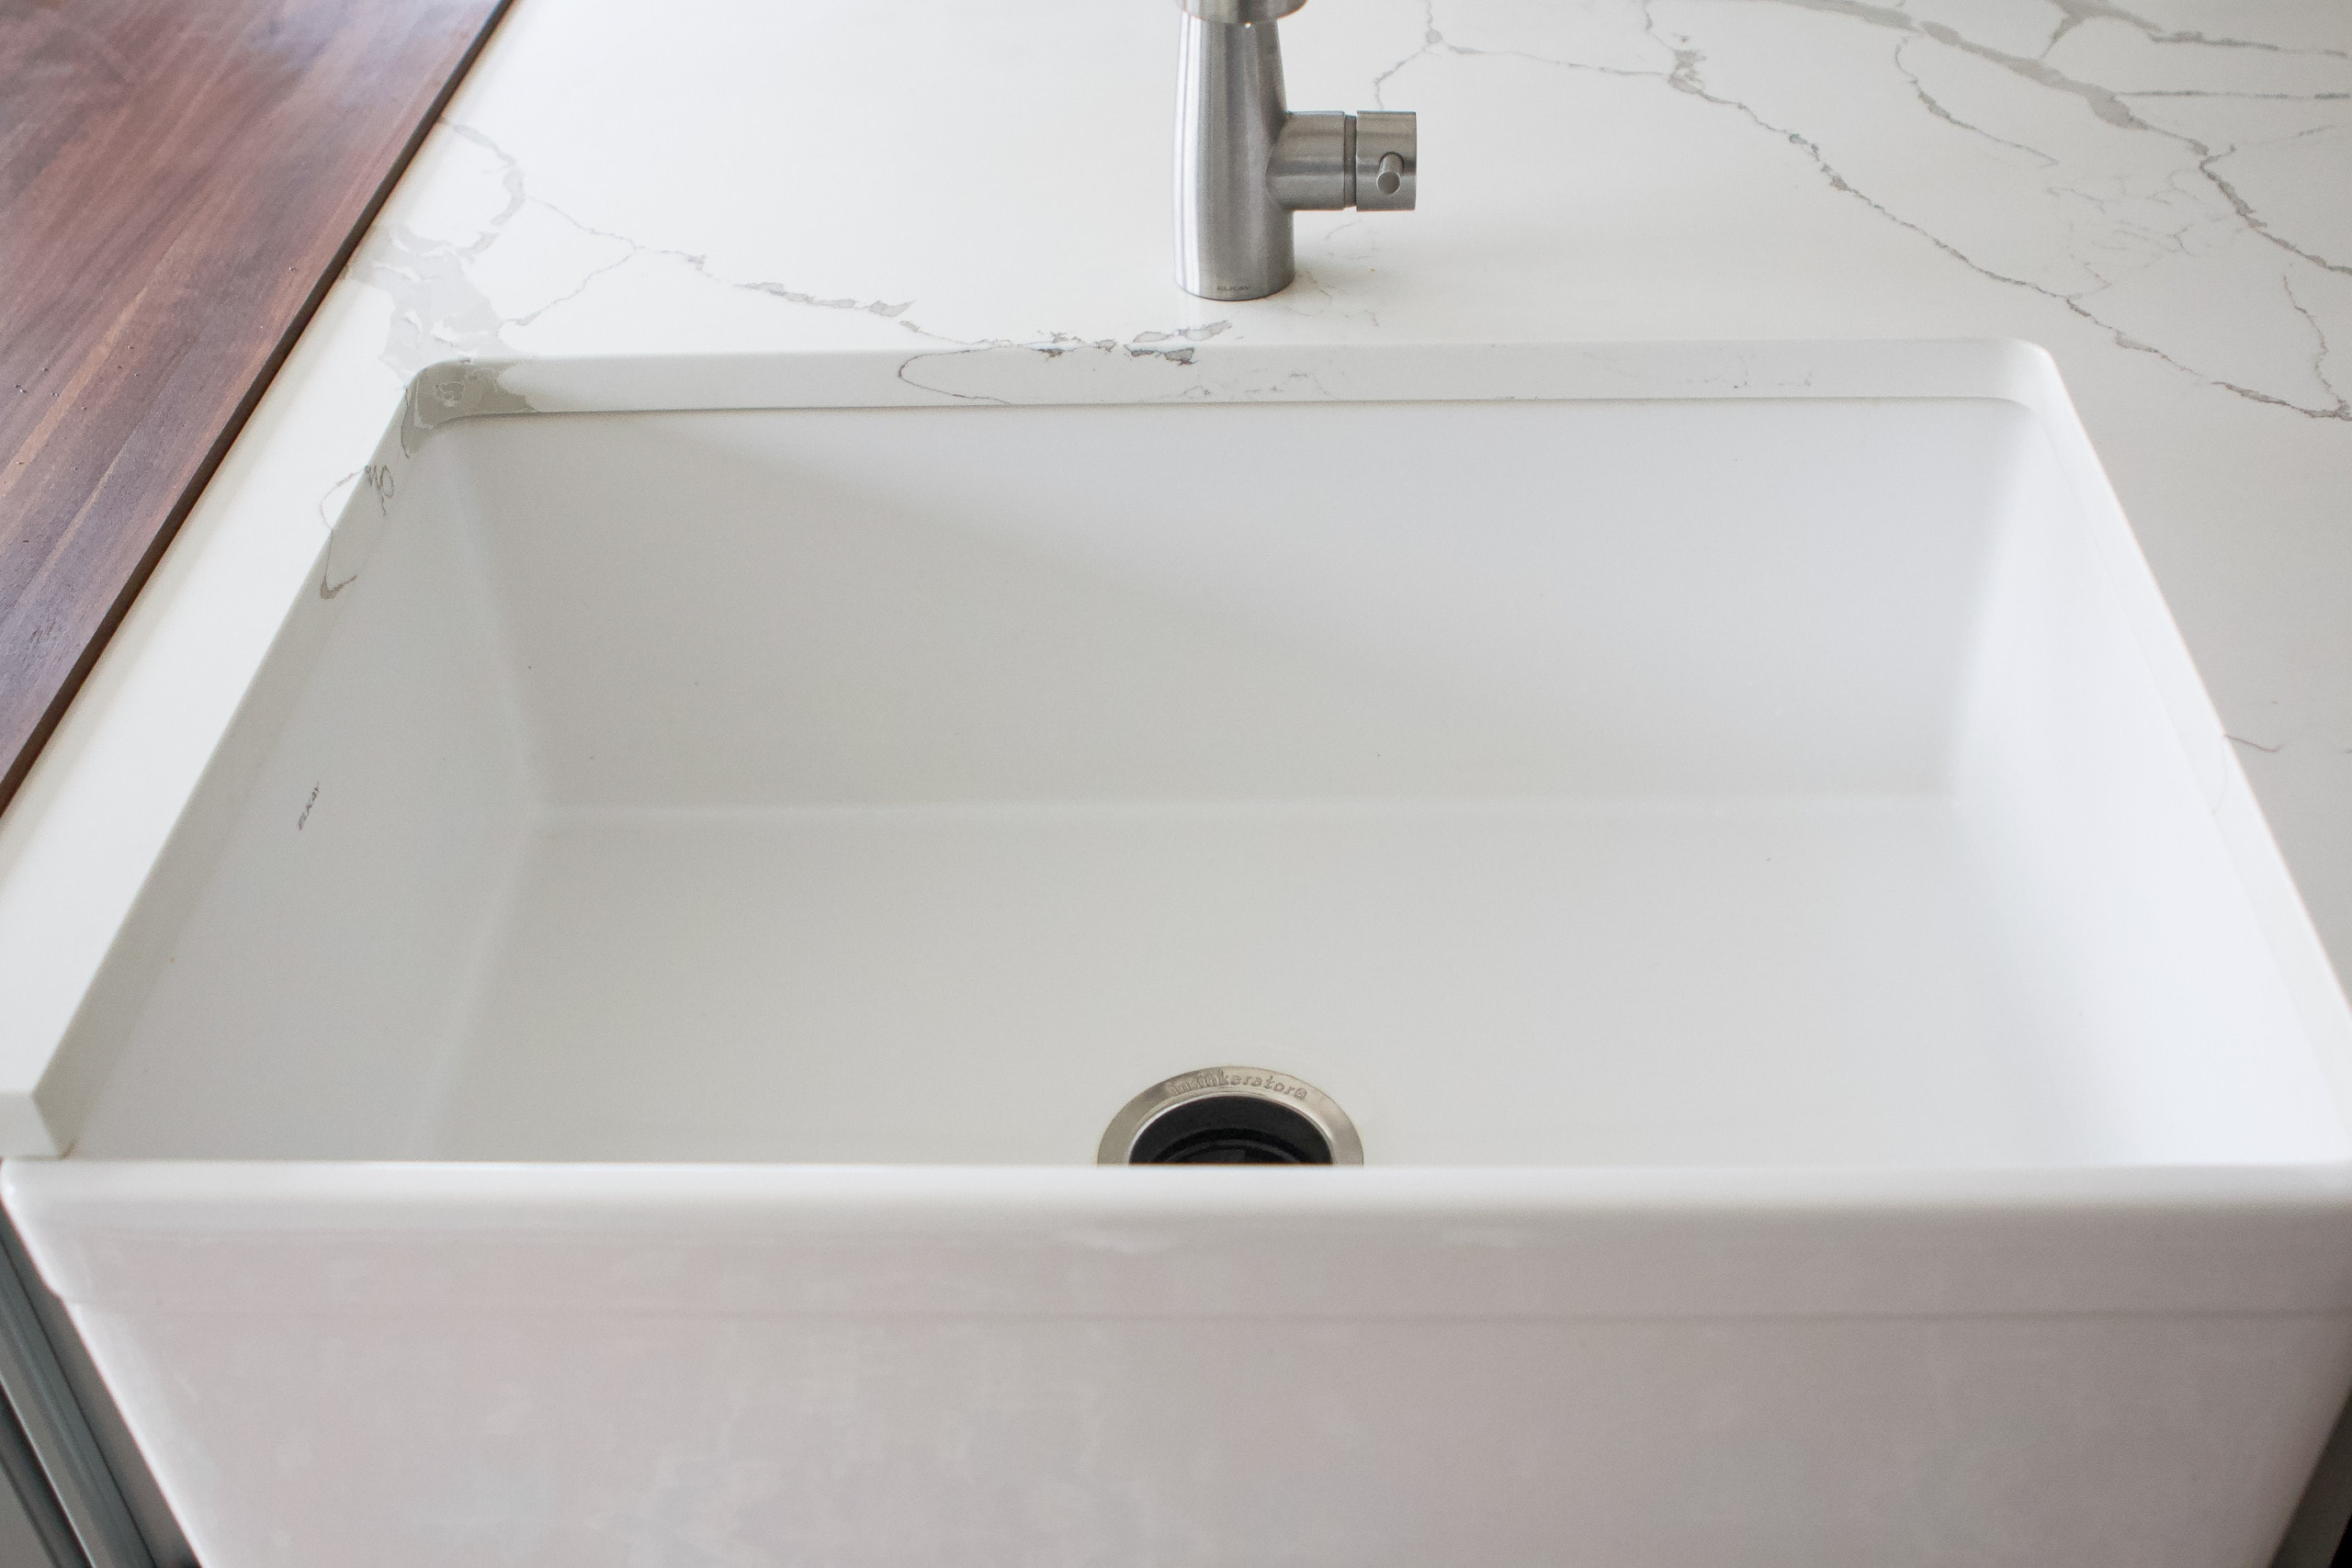 Our deep kitchen sink from Elkay